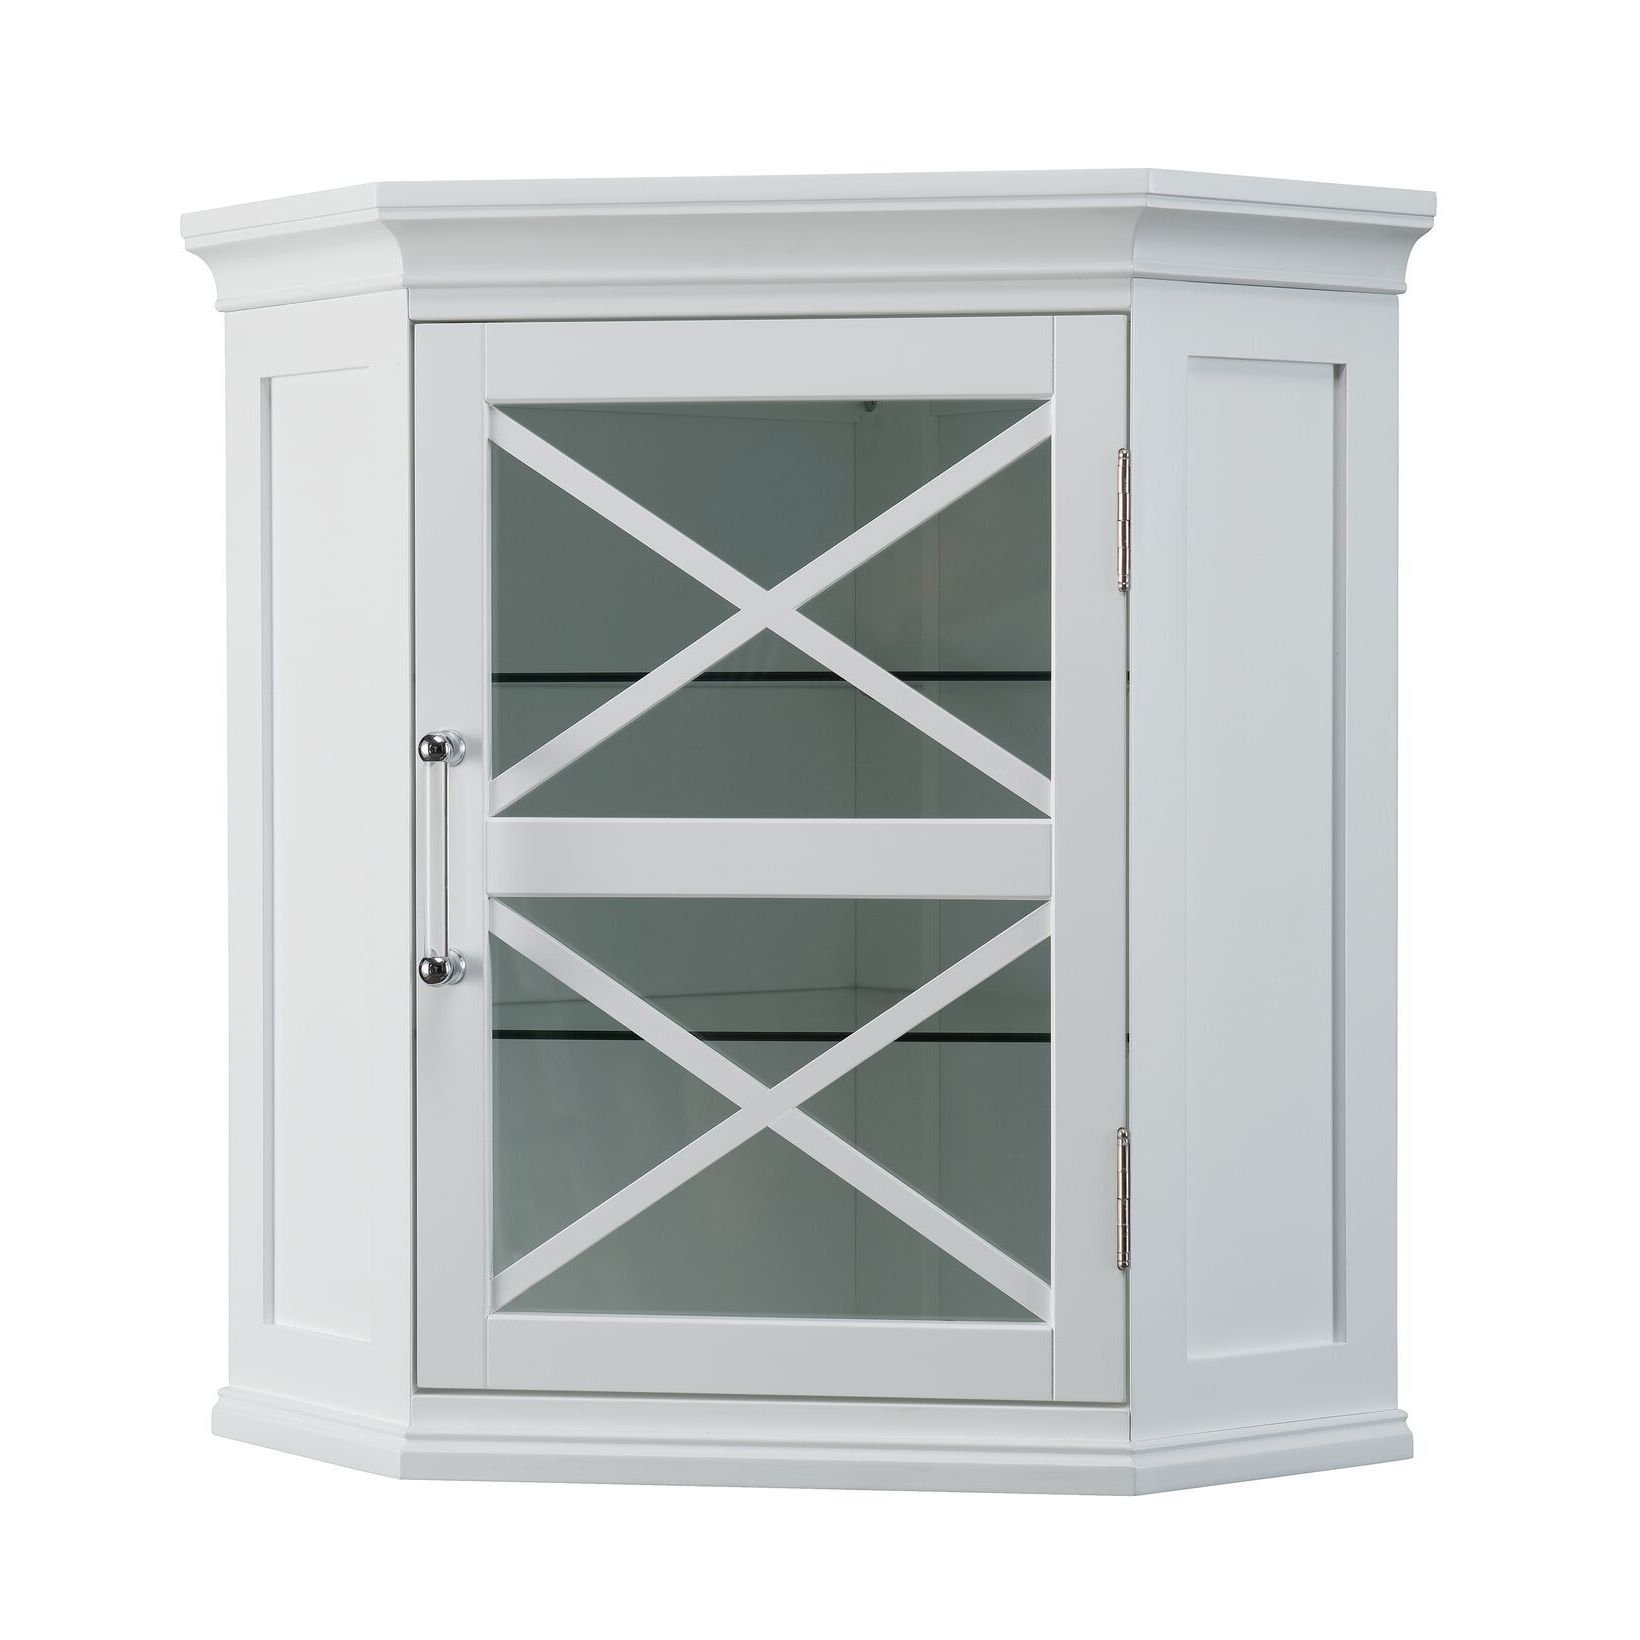 Bathroom Cabinet / Bathroom Storage Cabinet Grayson White Corner Wall Cabinet in Modern Style. Assembly Required